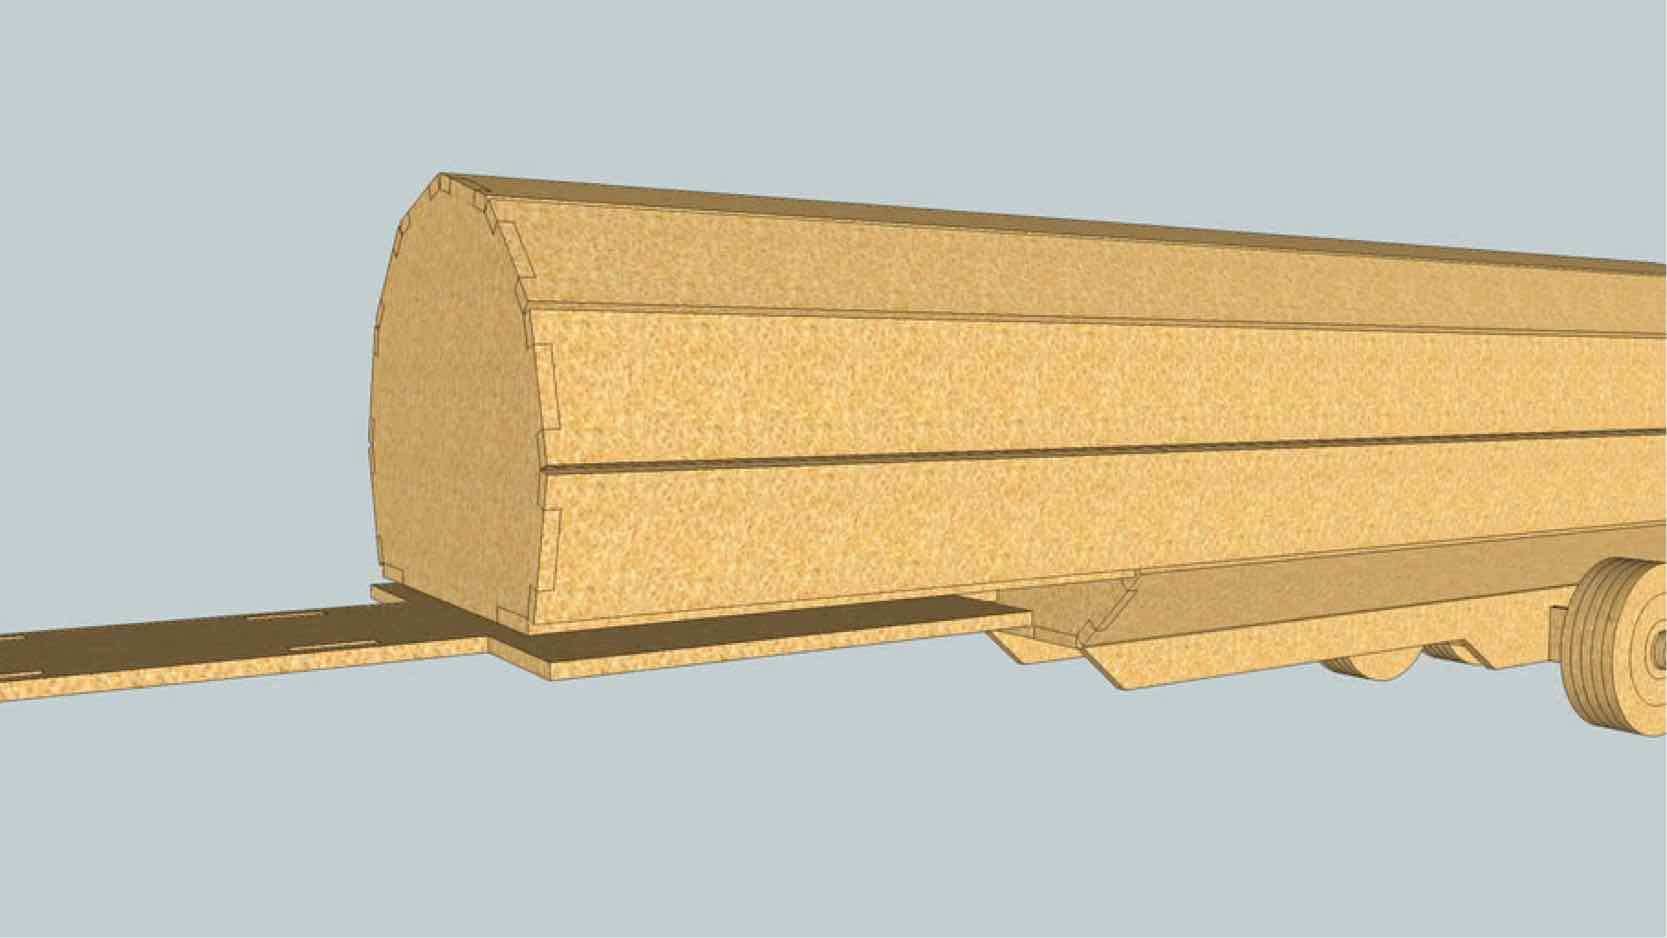 trucks,toys,childrens,sketchup,Google 3D,3-D warehouse,childs,kids,tanks,drawings,free woodworking plans,projects,do it yourself,woodworkers